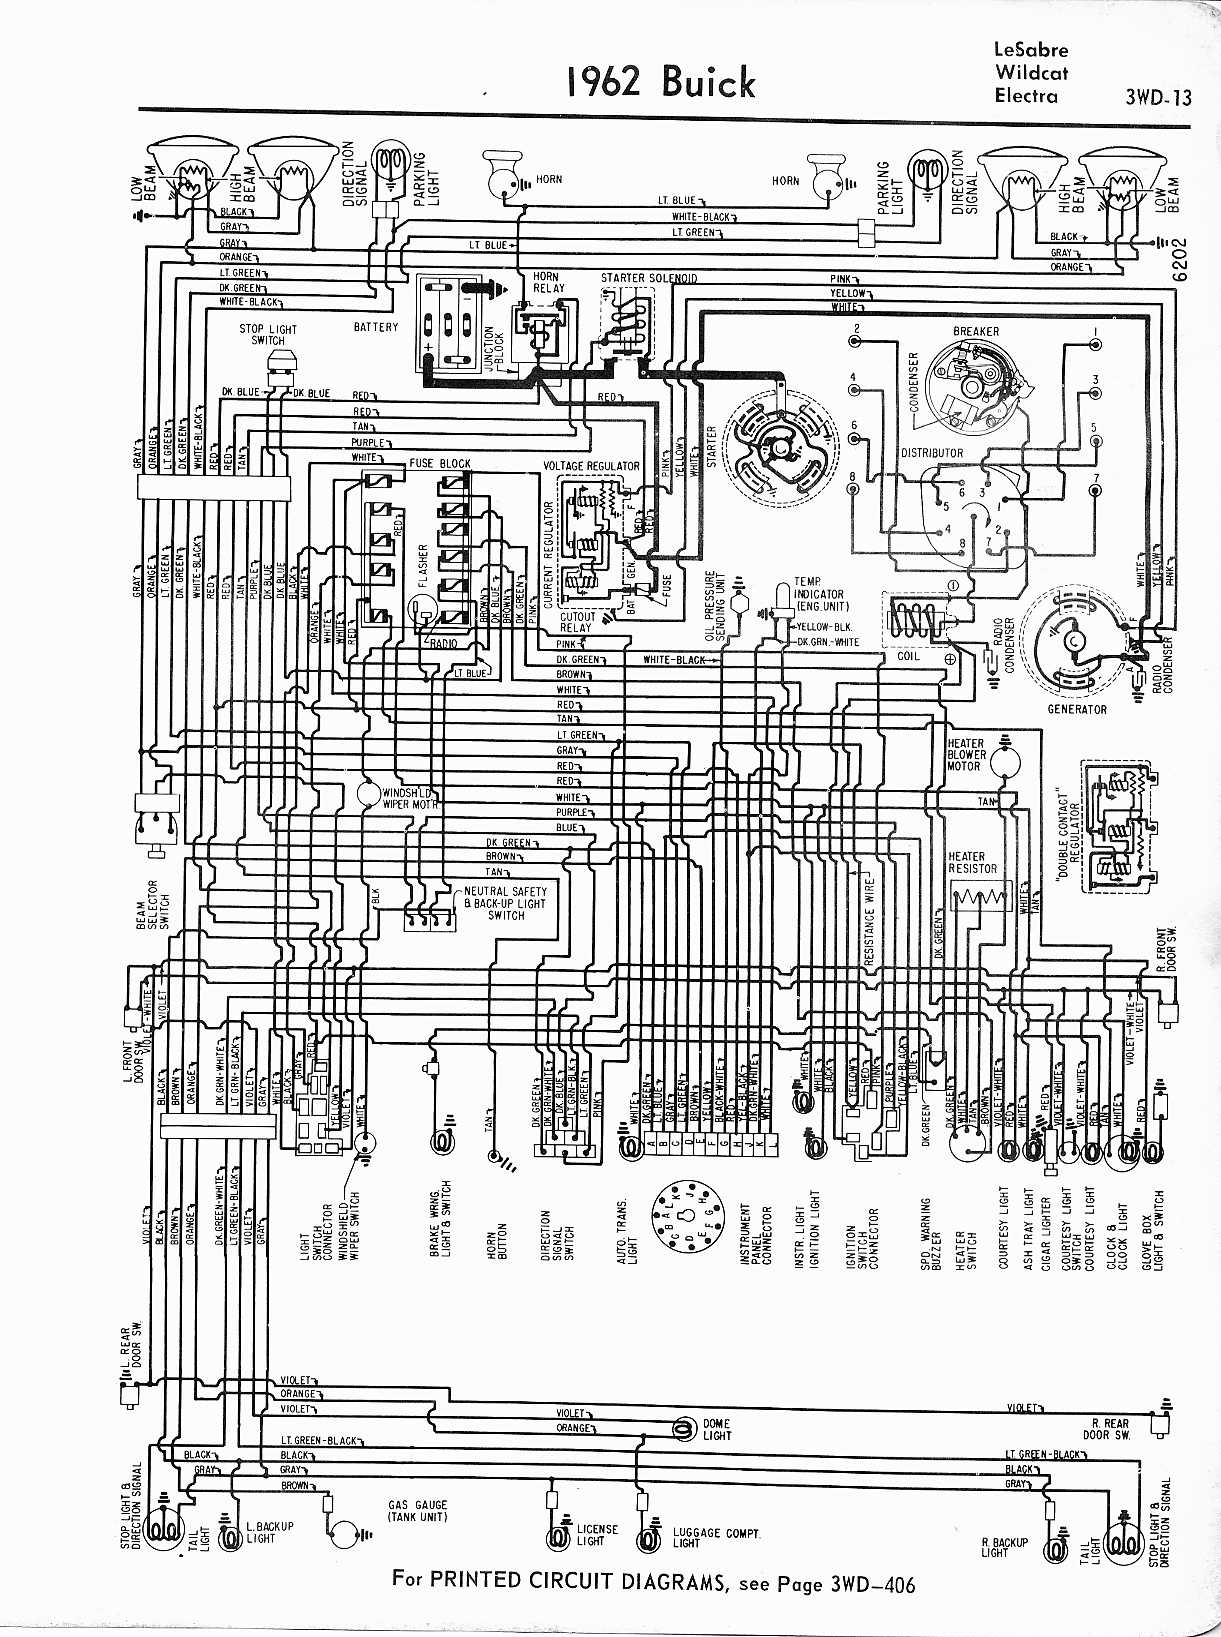 1970 buick gs wiring diagram 1970 mercury outboard wiring diagram